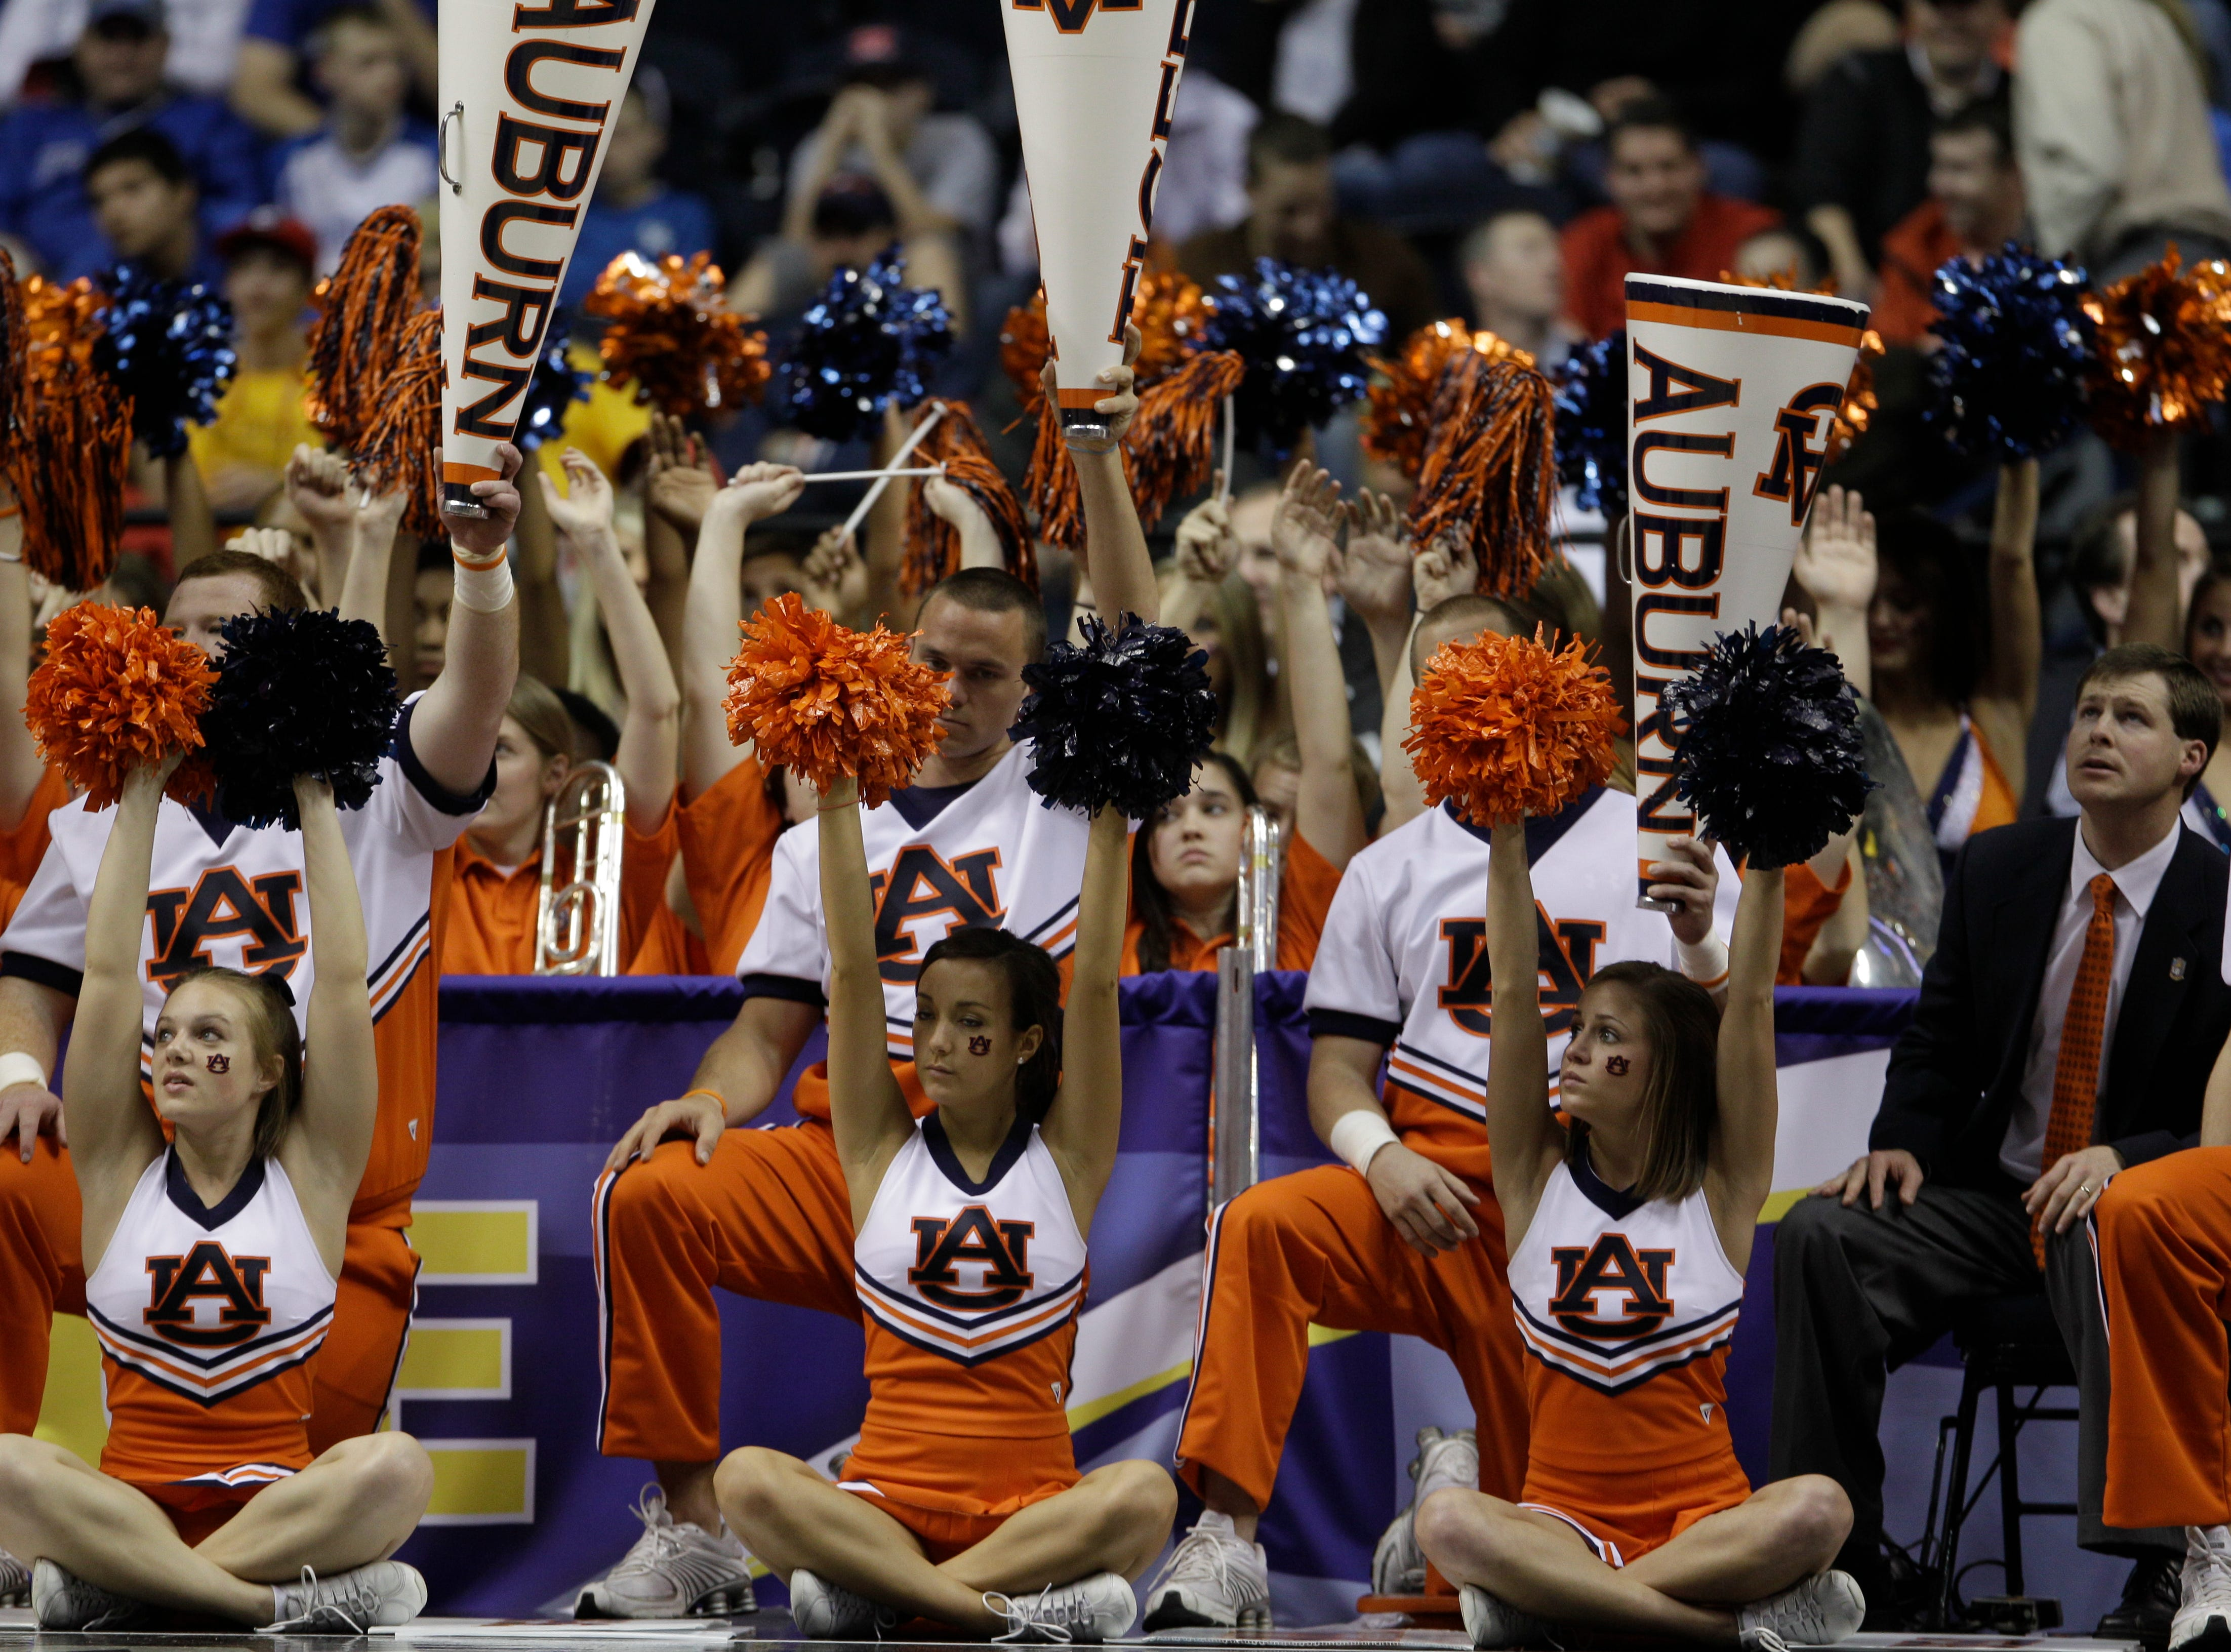 Auburn cheerleaders perform in the second half of an NCAA college basketball game against Florida on Thursday, March 11, 2010, at the Southeastern Conference tournament in Nashville, Tenn. Florida won 78-69. (AP Photo/Mark Humphrey)